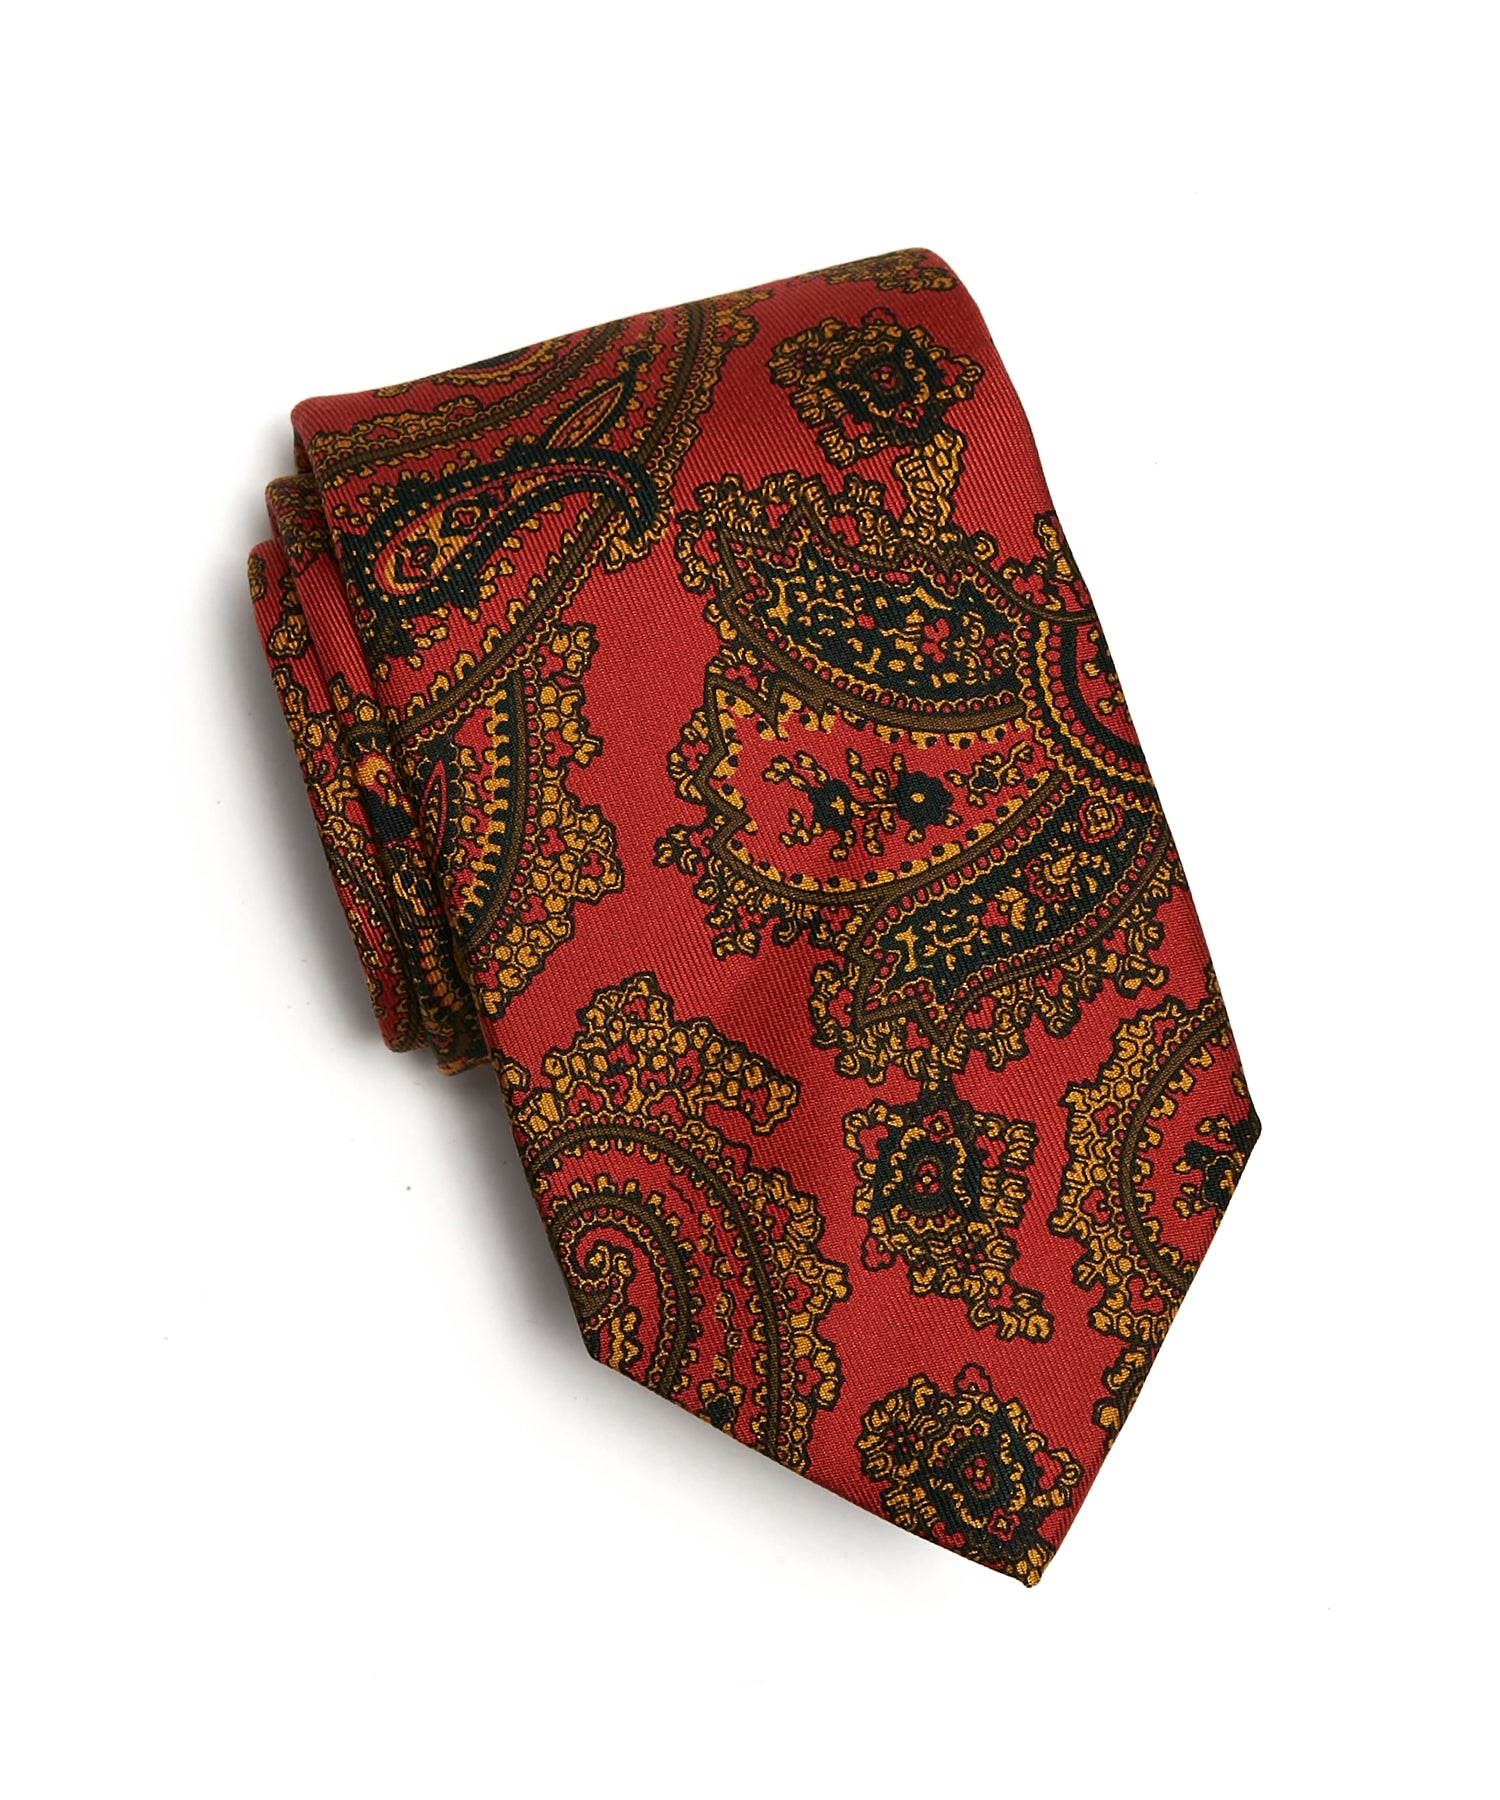 Drakes Large Paisley Print 36oz Madder Silk Tie in Red